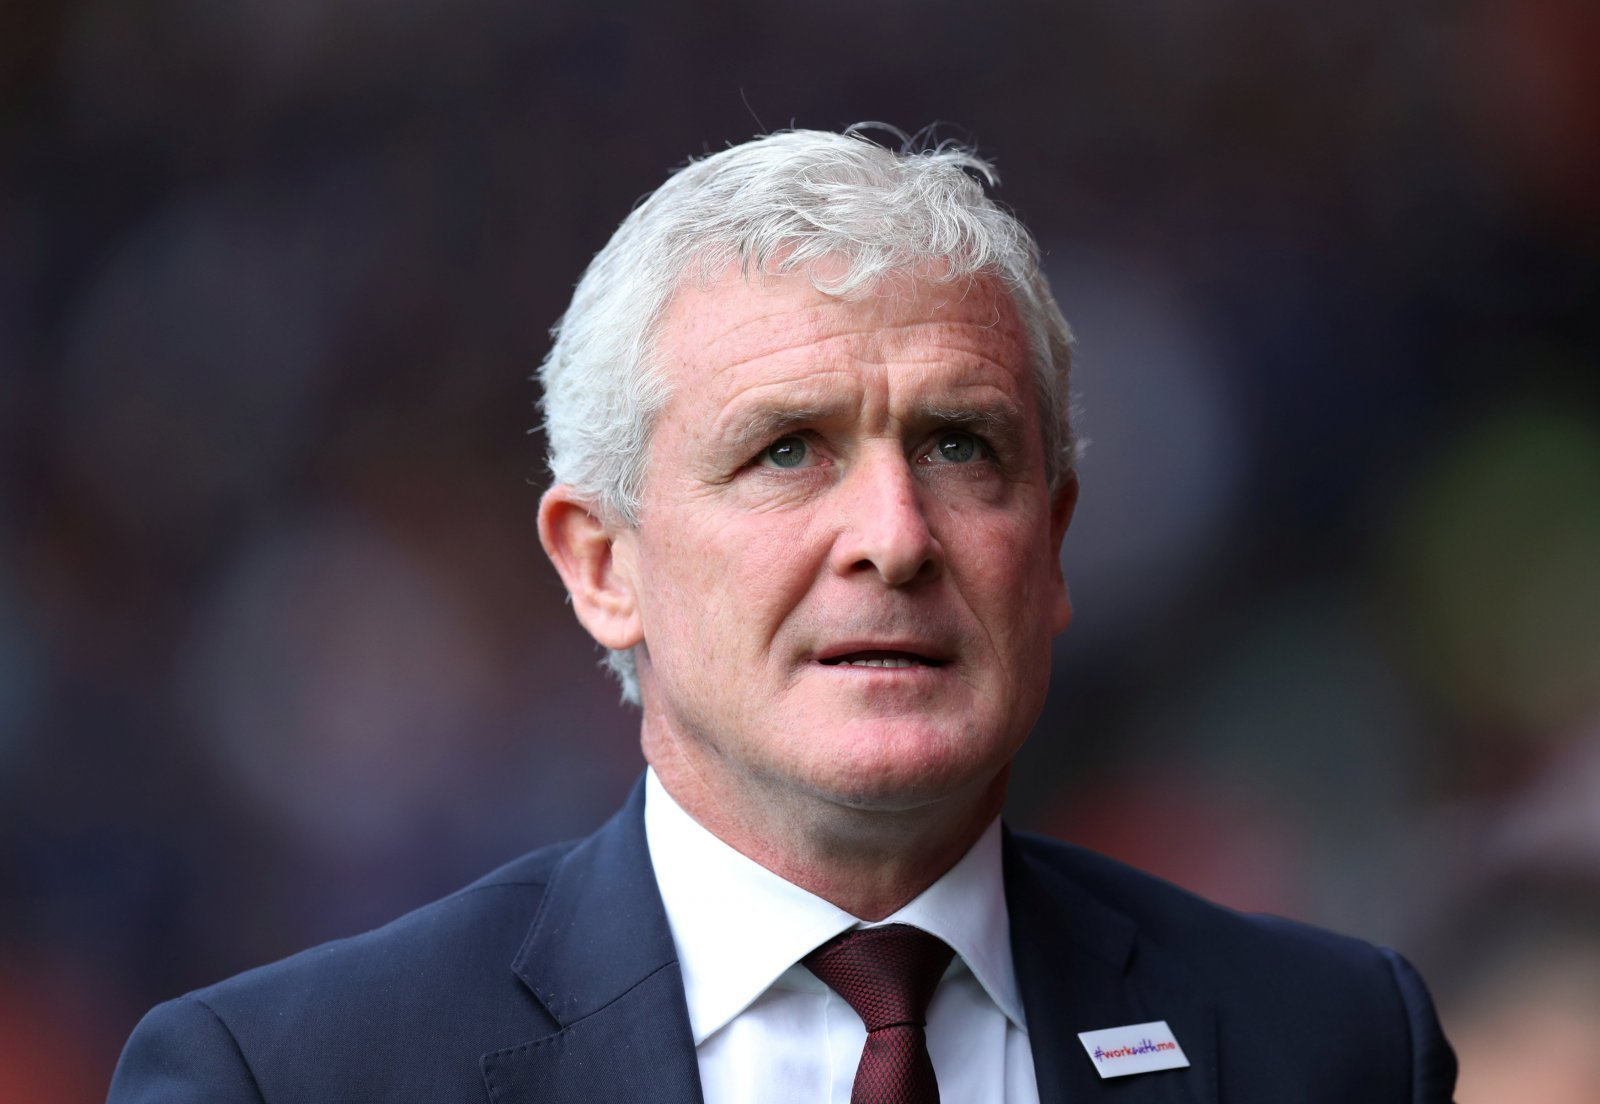 Hughes has no excuses if Newcastle beat Southampton despite his recent words suggesting otherwise